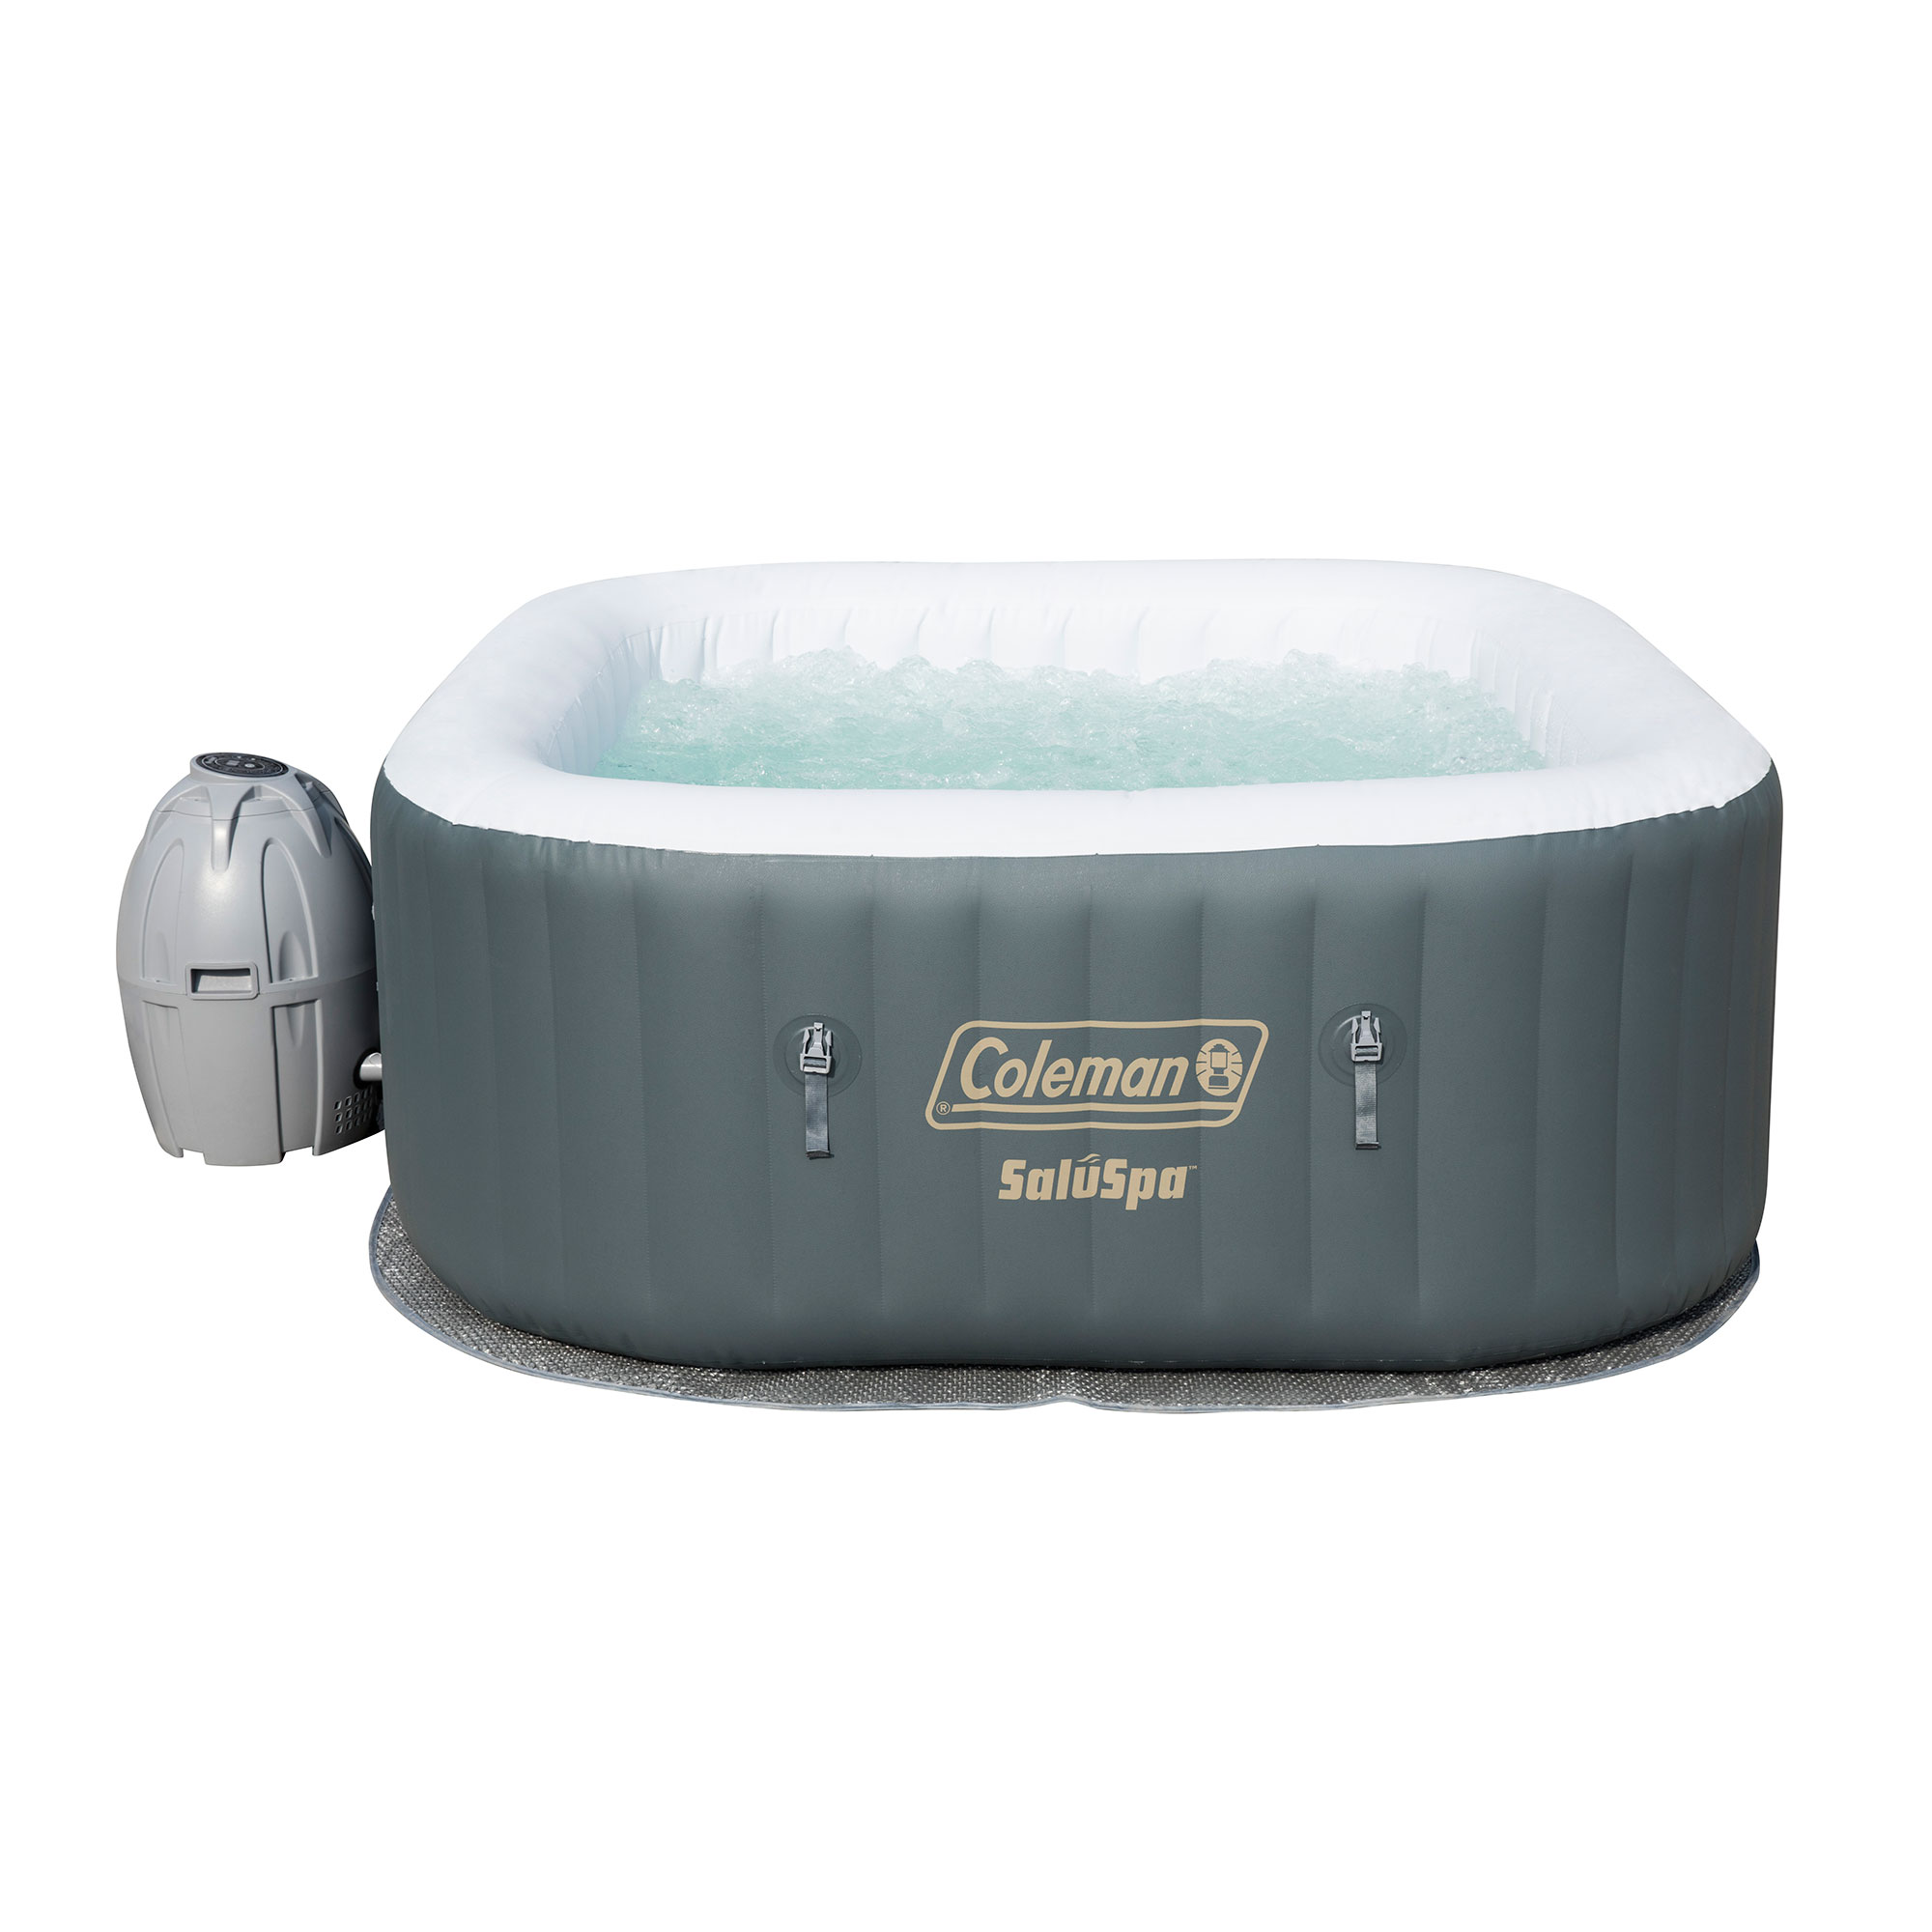 Coleman SaluSpa 4 Person Portable Inflatable Outdoor AirJet Spa Hot ...